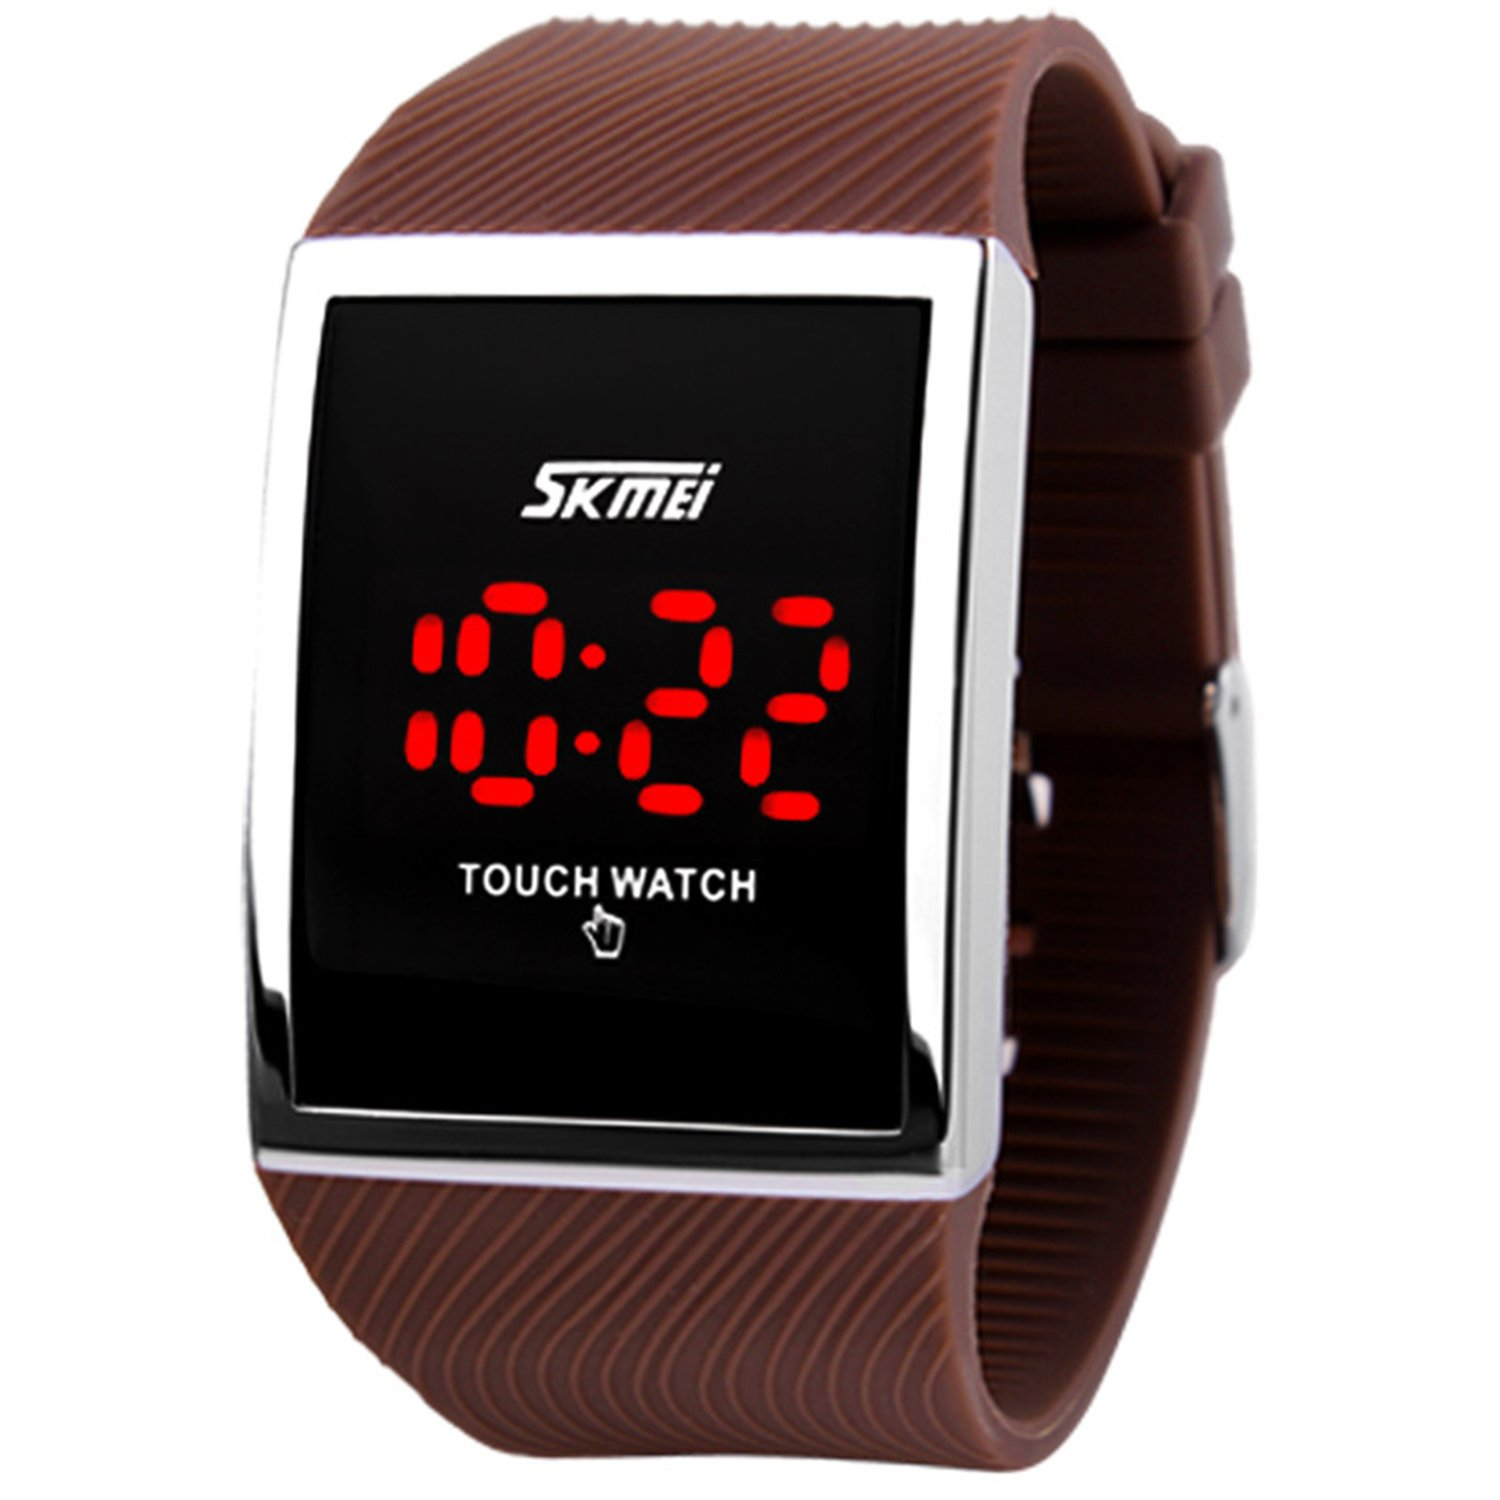 Touch Screen Outdoor Sports Black Watch with LED, Digital for Boys Girls, Above 10 Years Old Kids by FIZILI (Image #9)